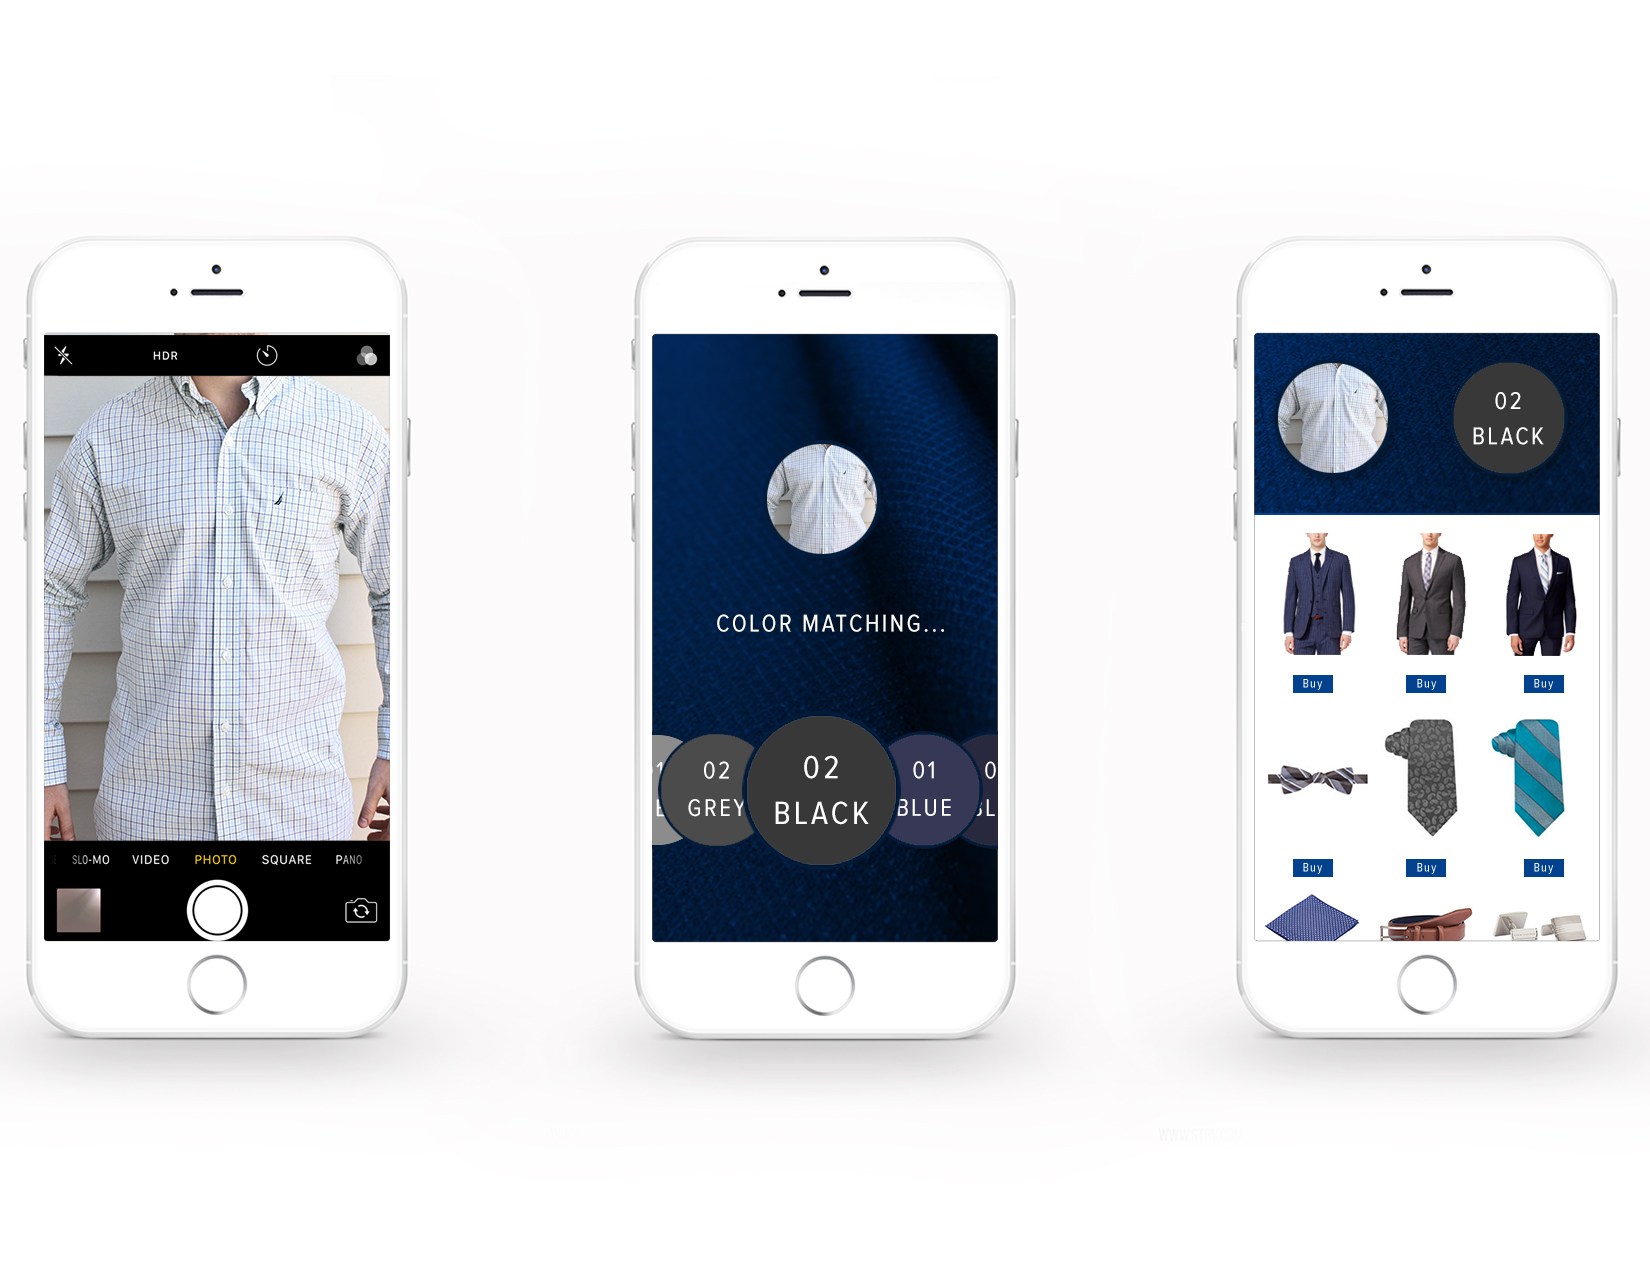 With the Color Match Application, take a picture of your favorite shirt or piece of clothing and find Distinction Clothing and Apparel that match. Matching clothes can then be purchased and sent to your home.